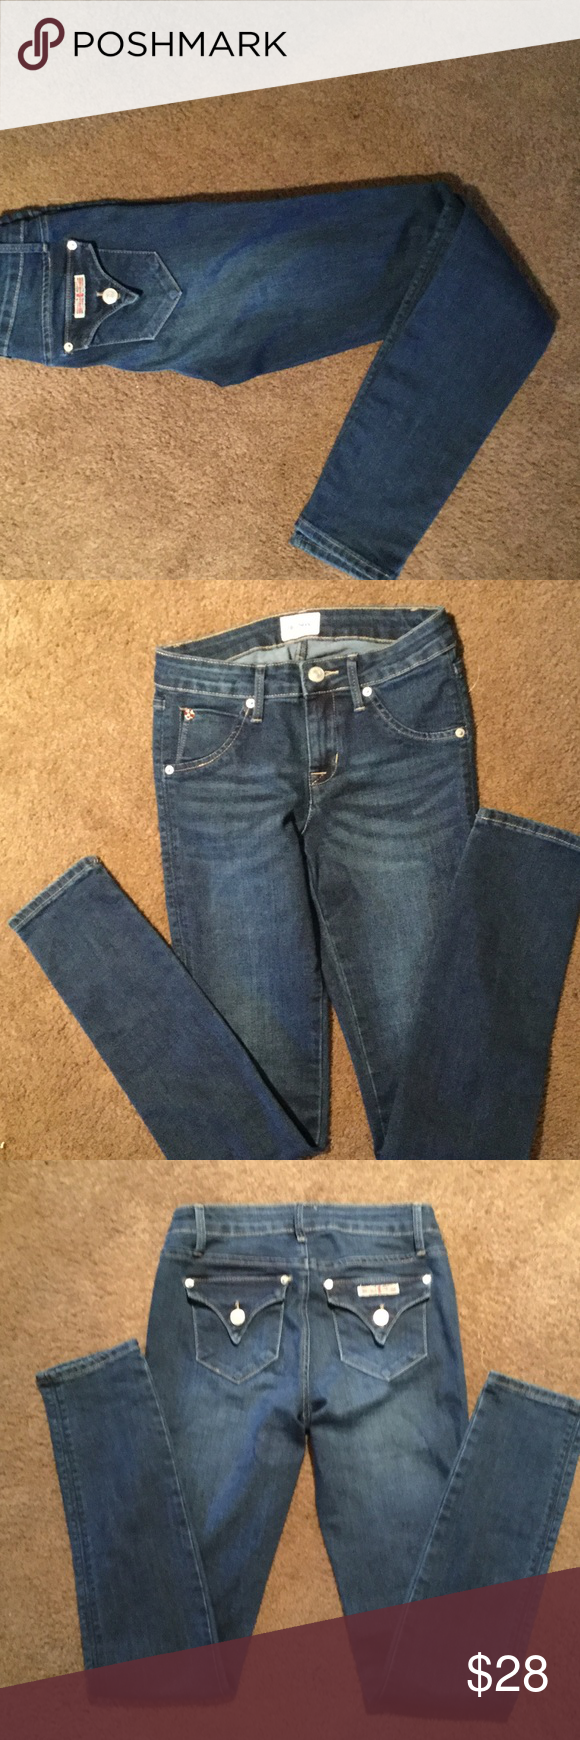 Hudson jeans Excellent condition! Hudson skinny jeans, price is firm. Hudson Jeans Bottoms Jeans